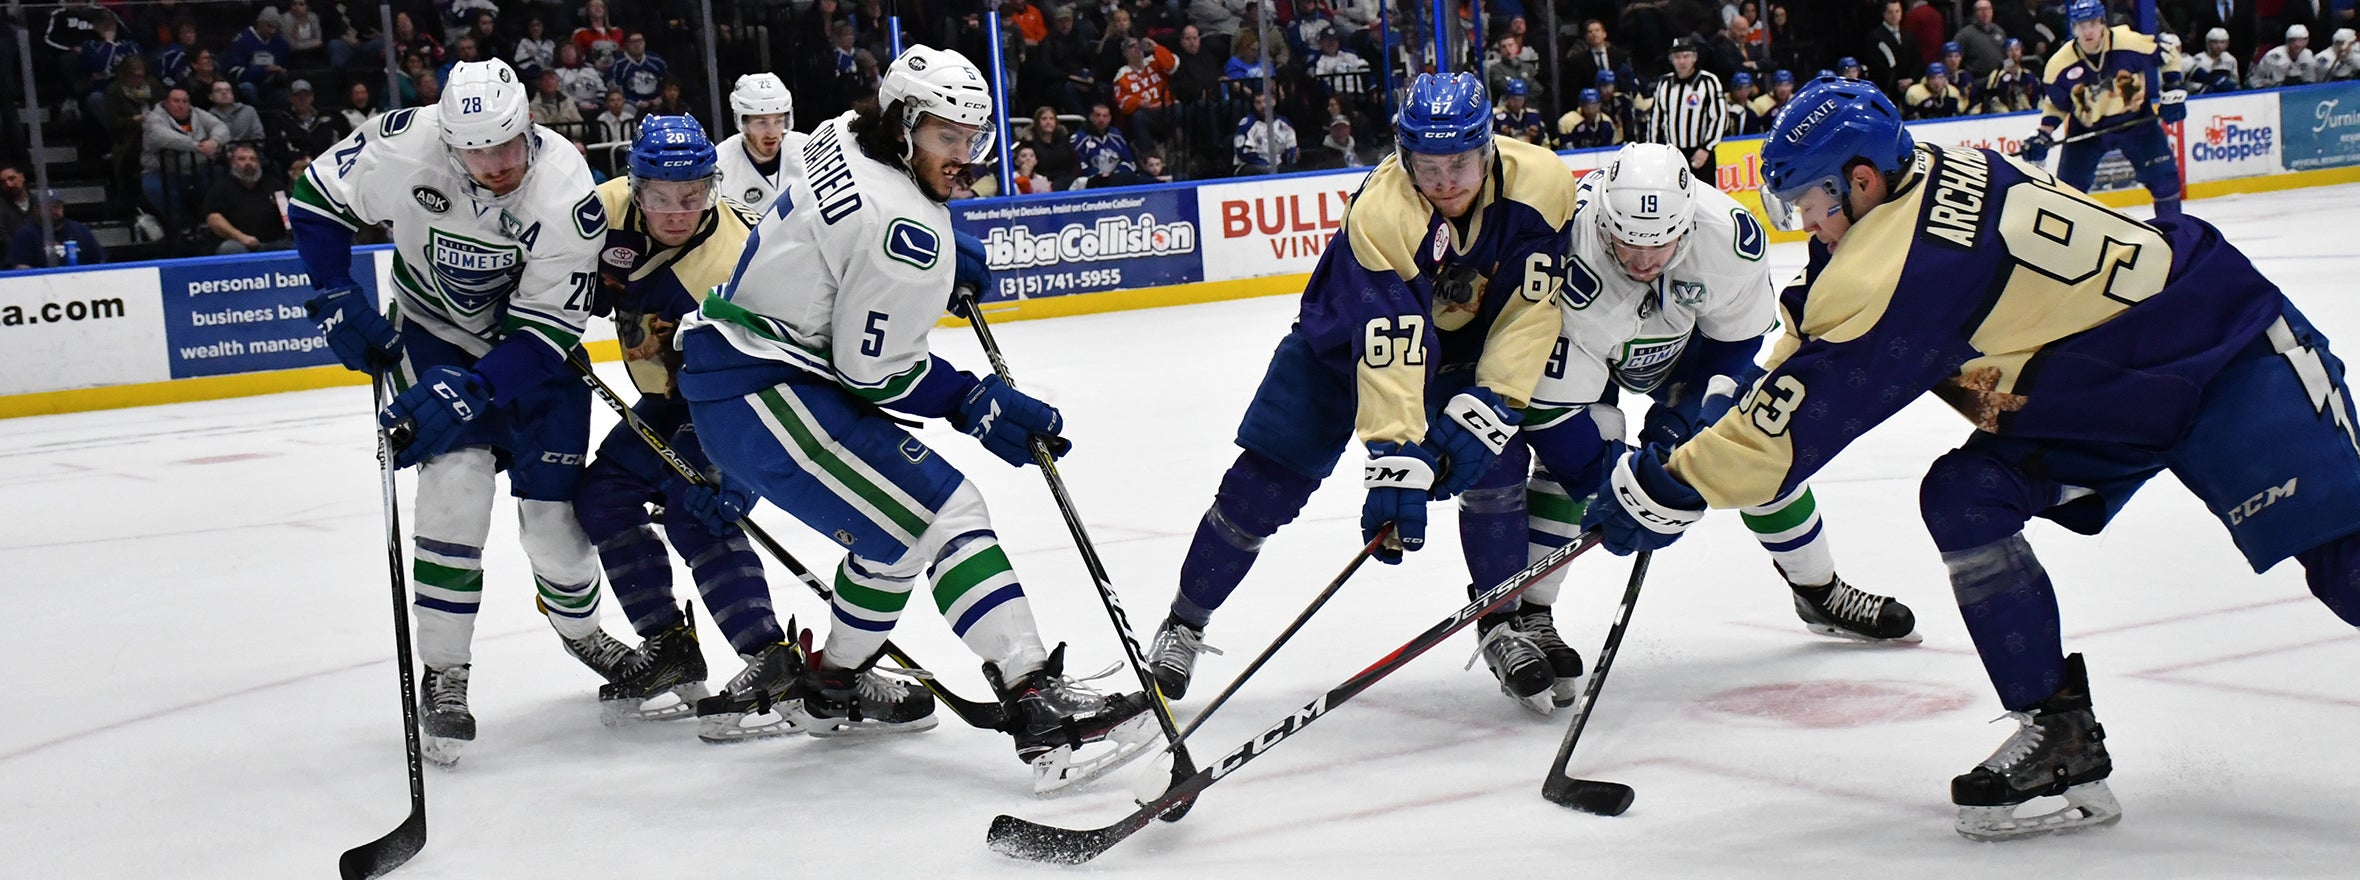 CRUNCH OUTLAST COMETS IN GOALTENDING DUEL